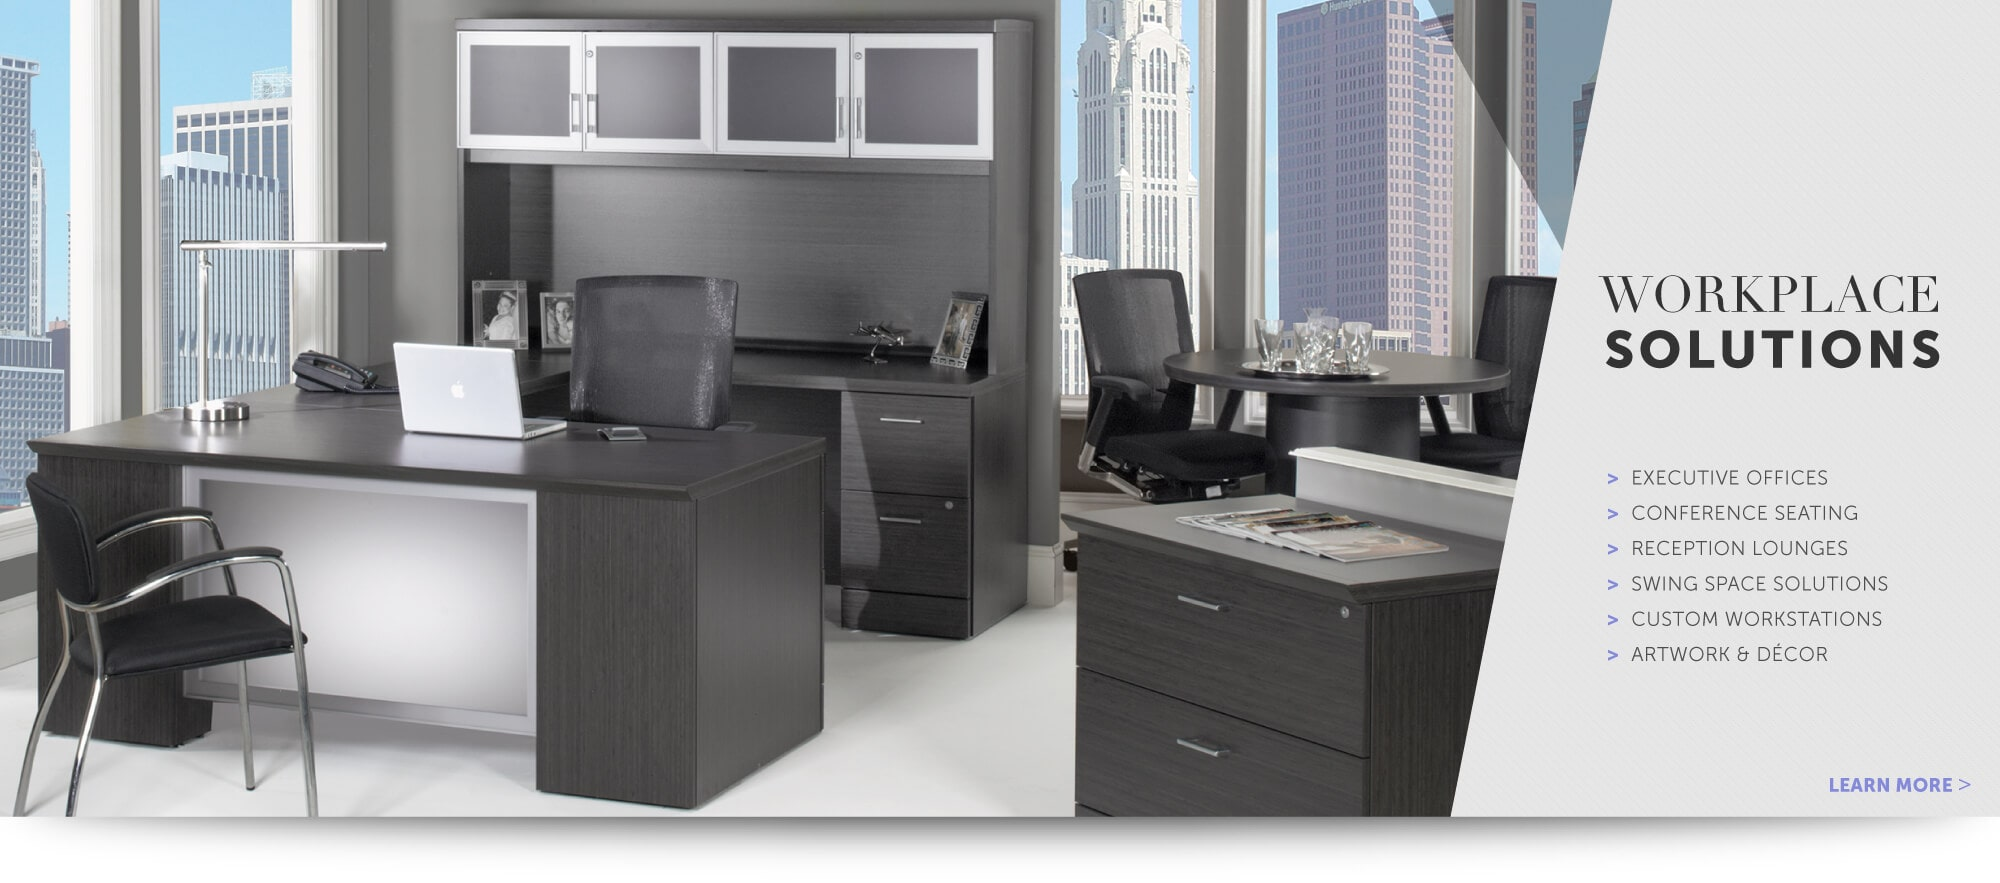 Rent Furniture For Office Home Events Afr Furniture Rental